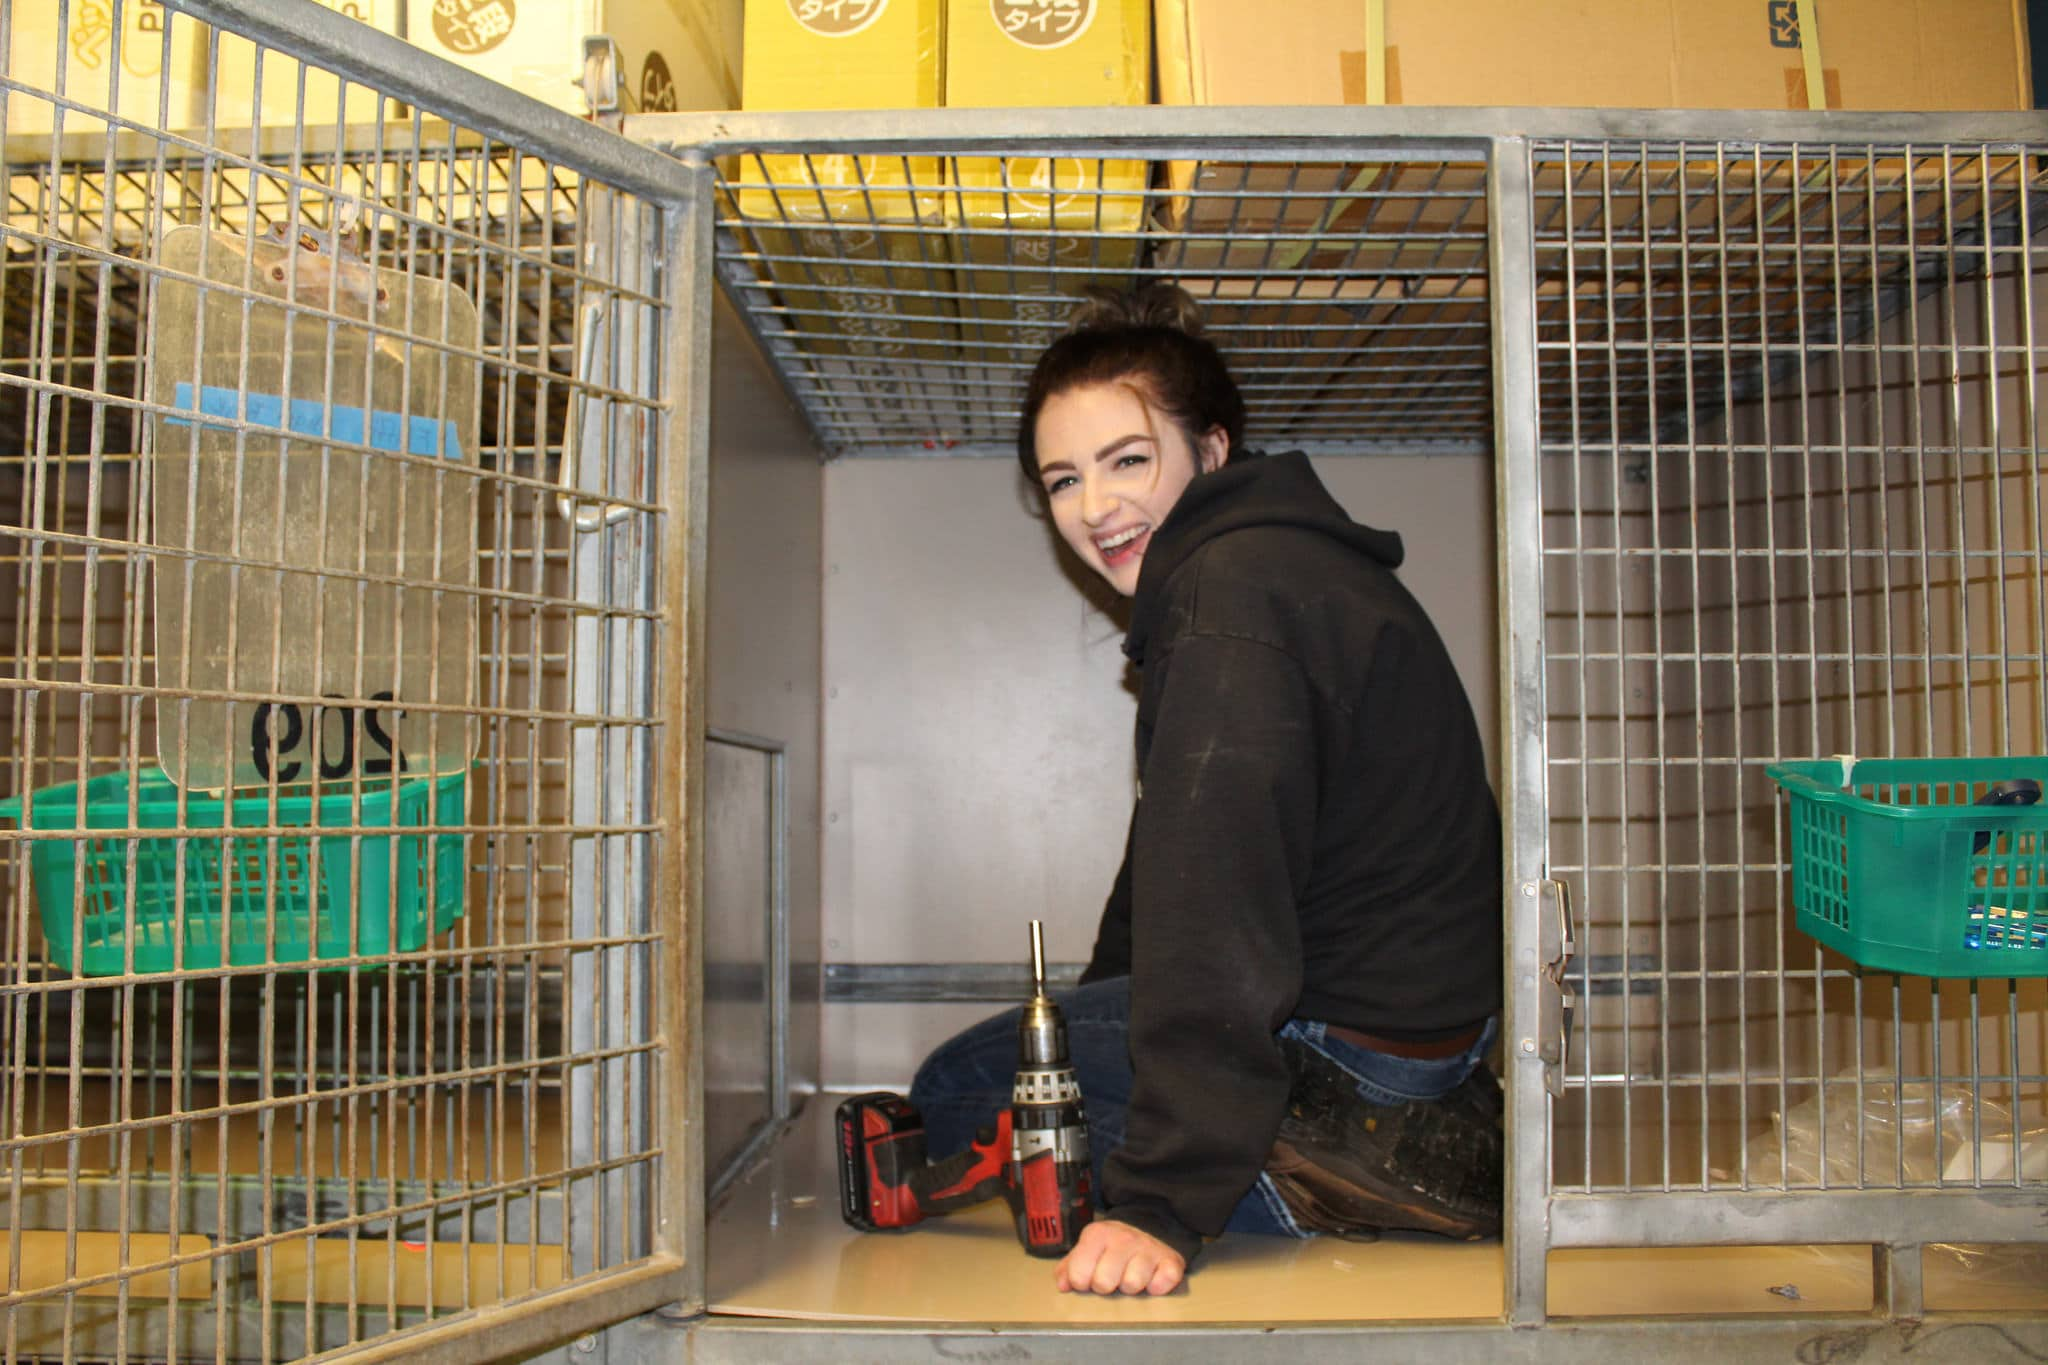 image of woman sitting in a kennel